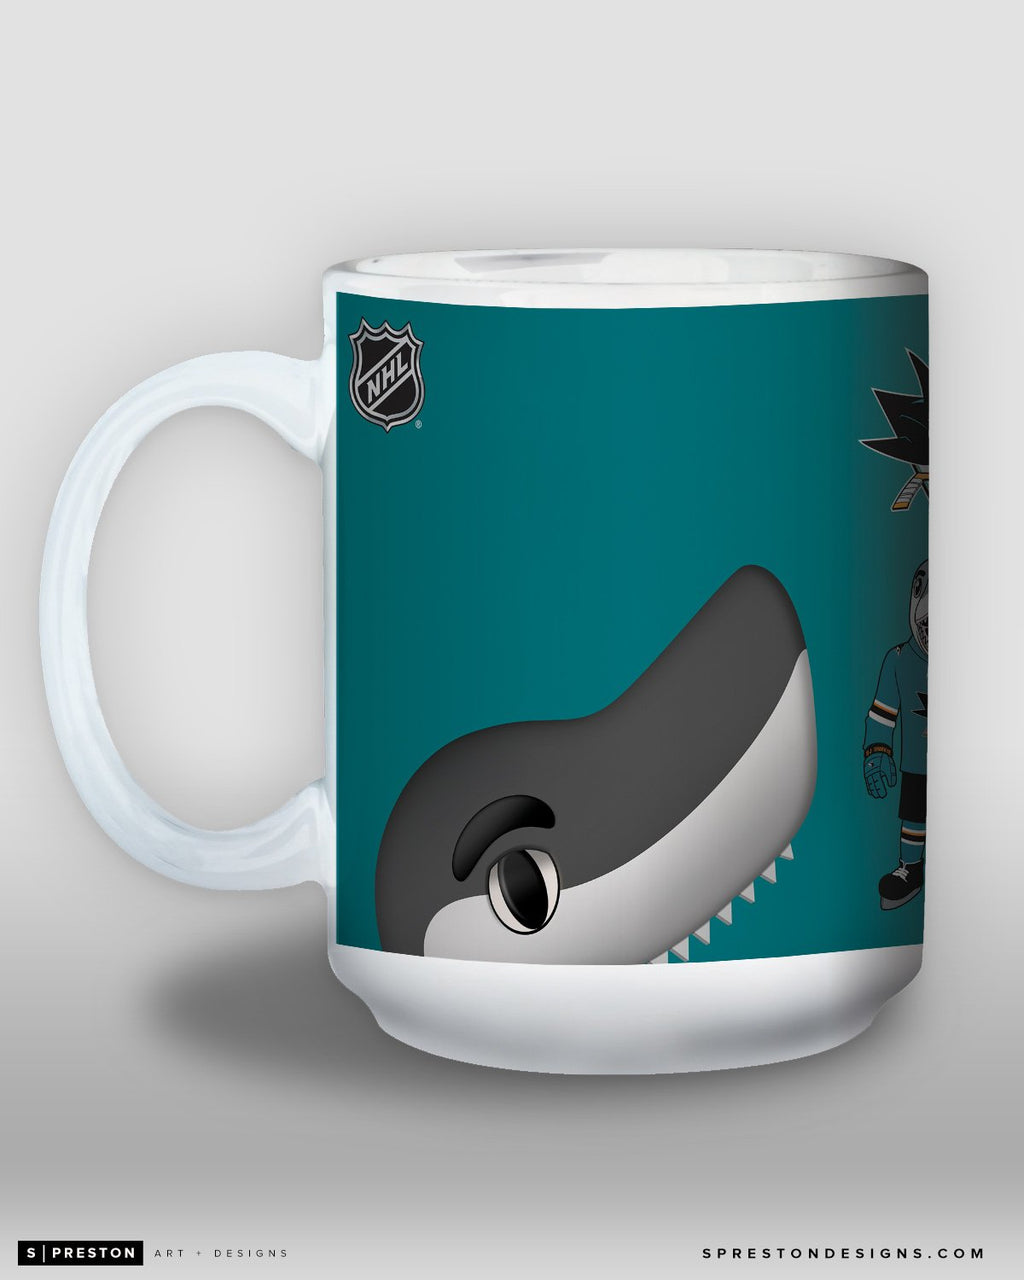 Minimalist S.J. Sharkie Coffee Mug - NHL Licensed - San Jose Sharks Mascot